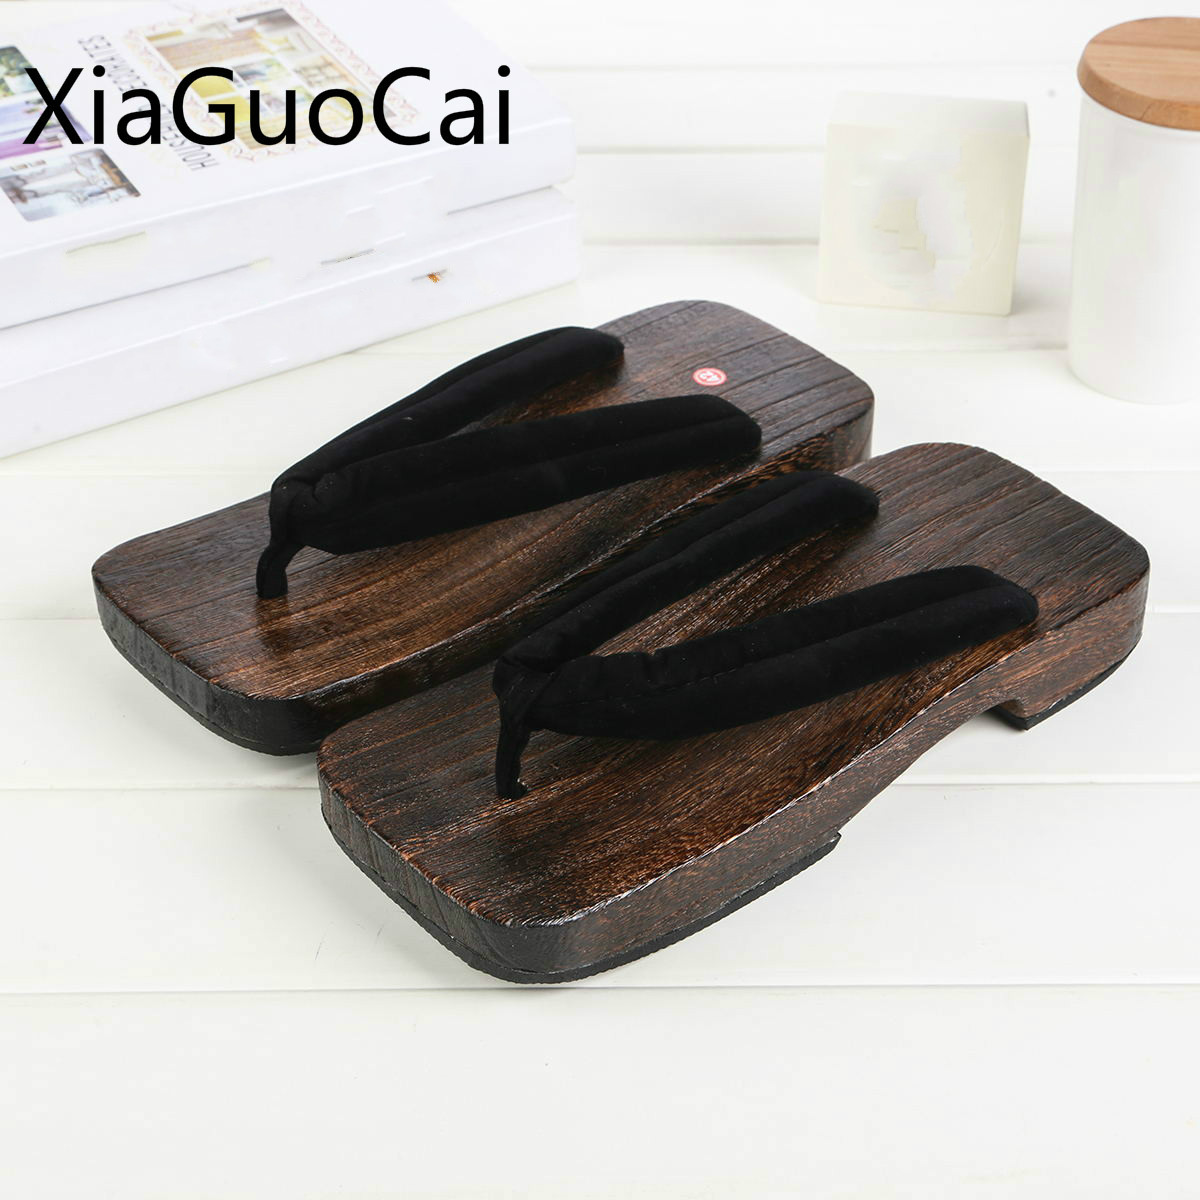 Fashion Brand Men Slippers Flip-flops Summer Wooden Clogs Japanese Style Male Slides Home Indoors Shoes Drop Shipping Lu10 35 hot sale natural man hemp flip flops summer breathable fashion beach sandal shoes men s casual canvas slides shoes free shipping